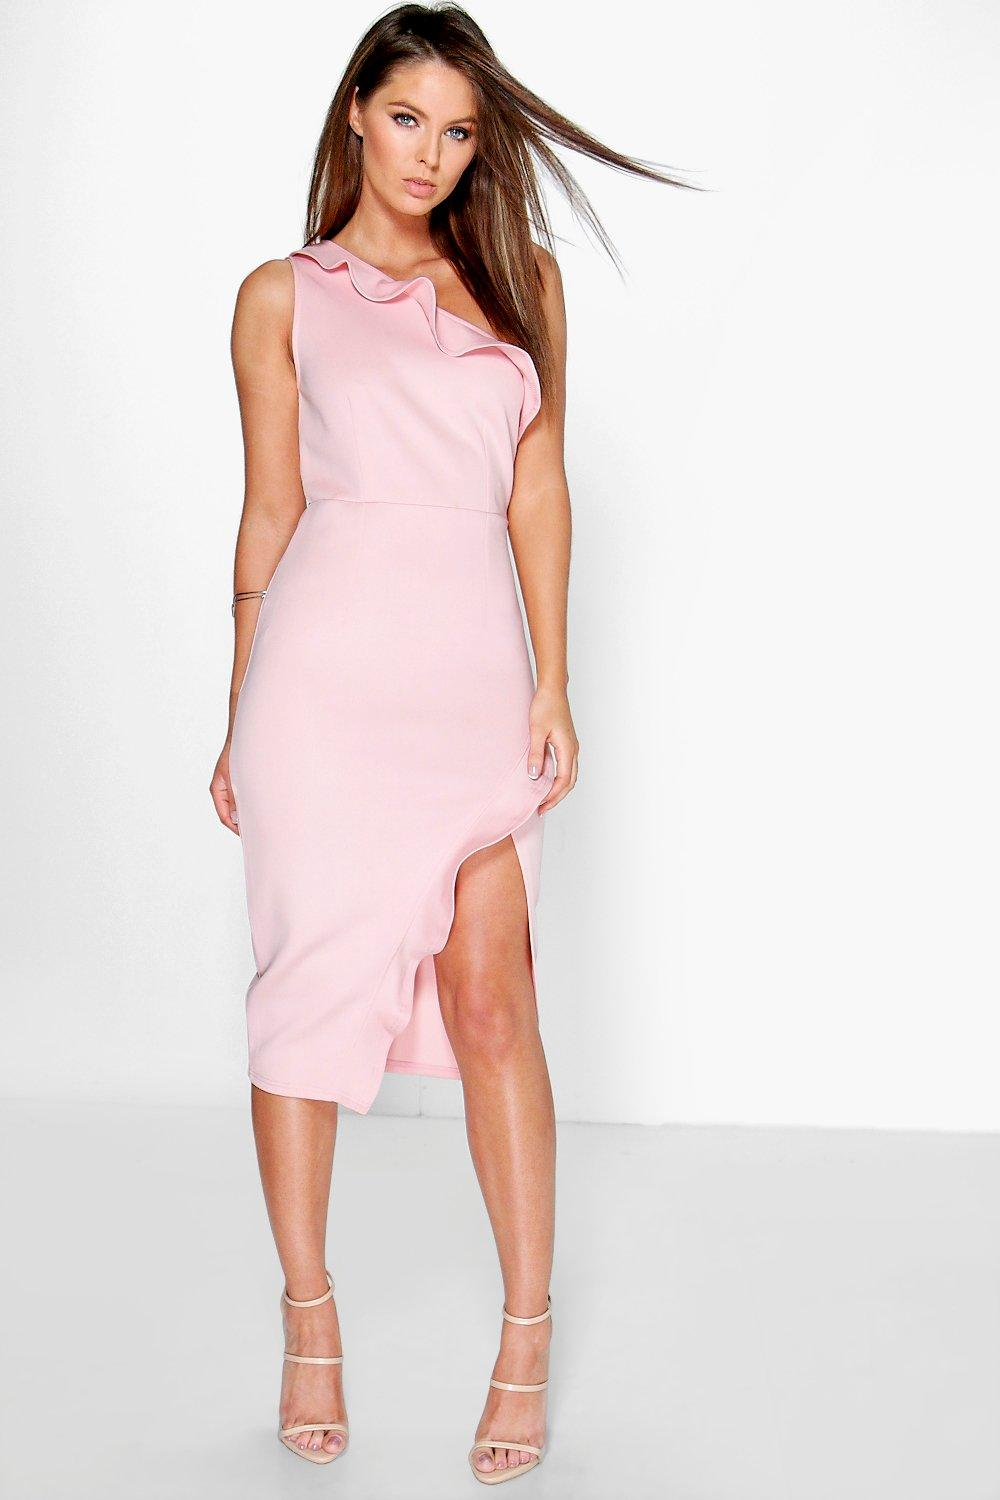 Dahna Frill One Shoulder Wrap Skirt Midi Dress